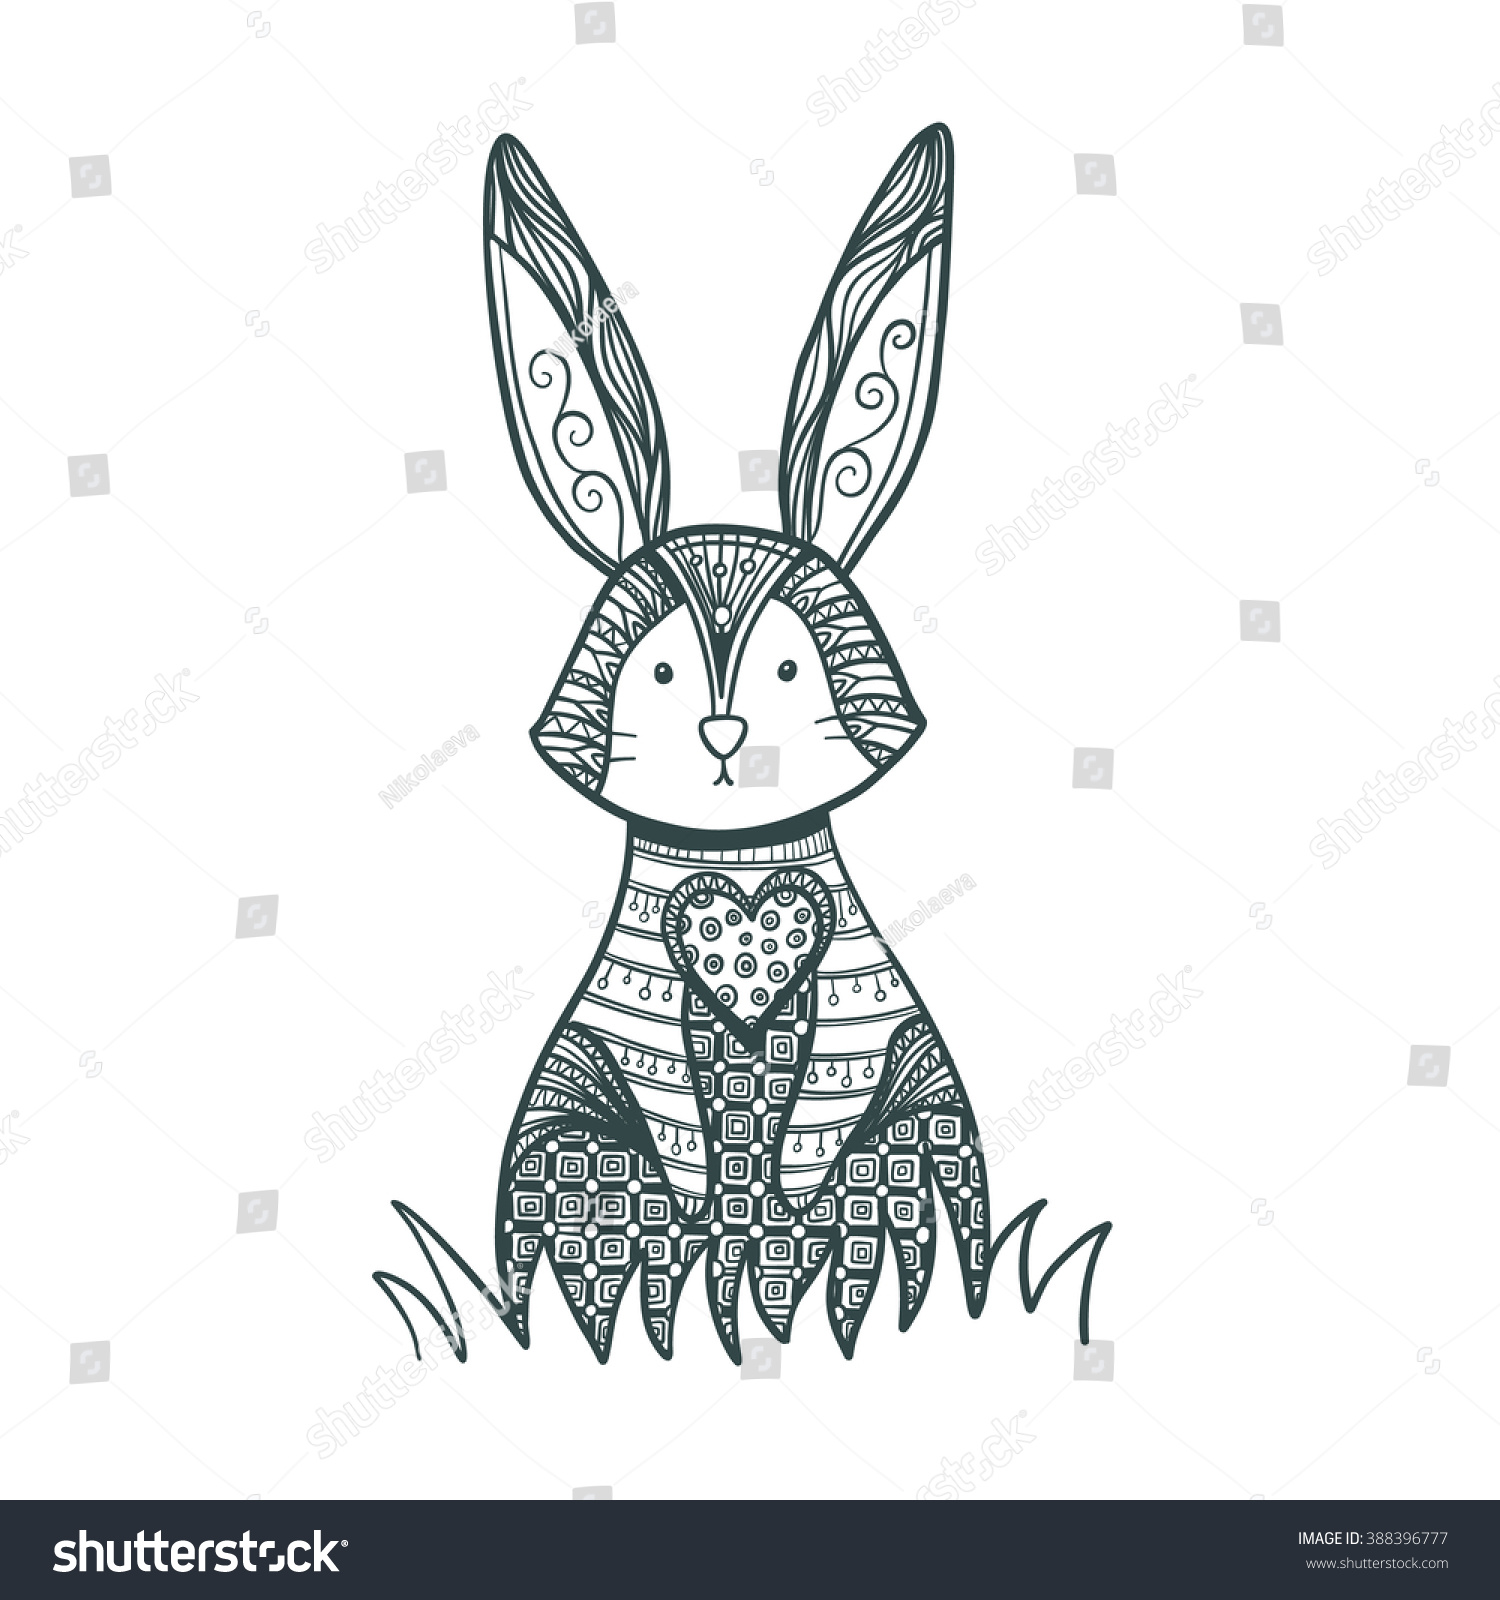 drawing zentangle rabbit coloring page decorative stock vector